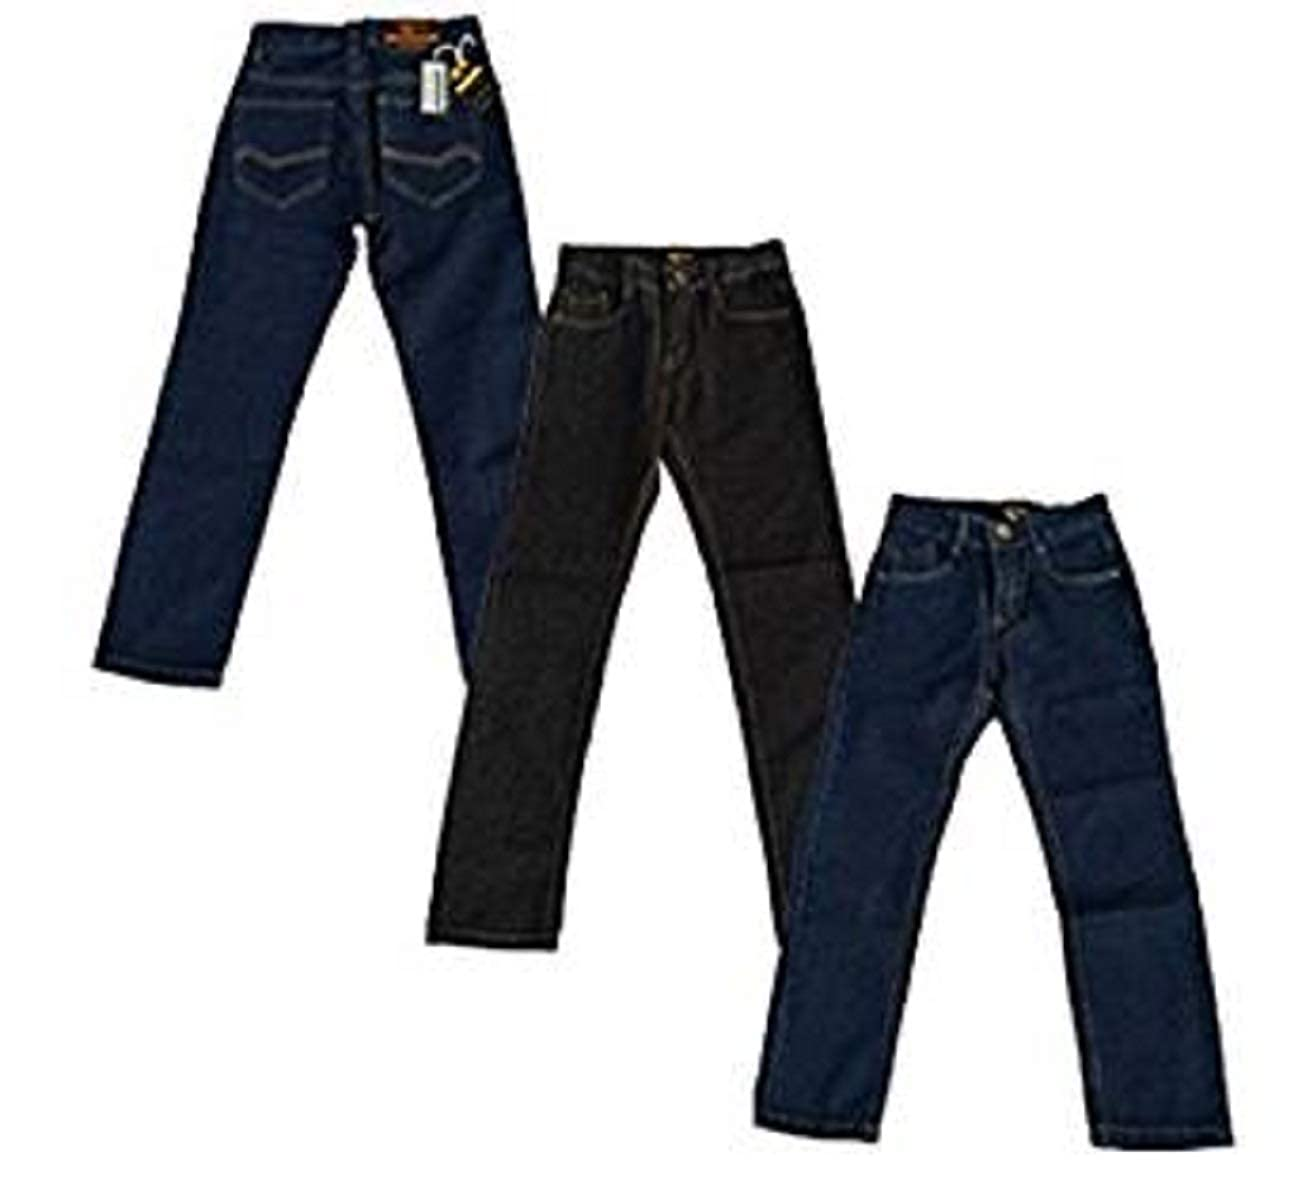 justfound4u Jeans for Boys with Elastic Waist Denim Trousers Adjustable Waist Size 2-16